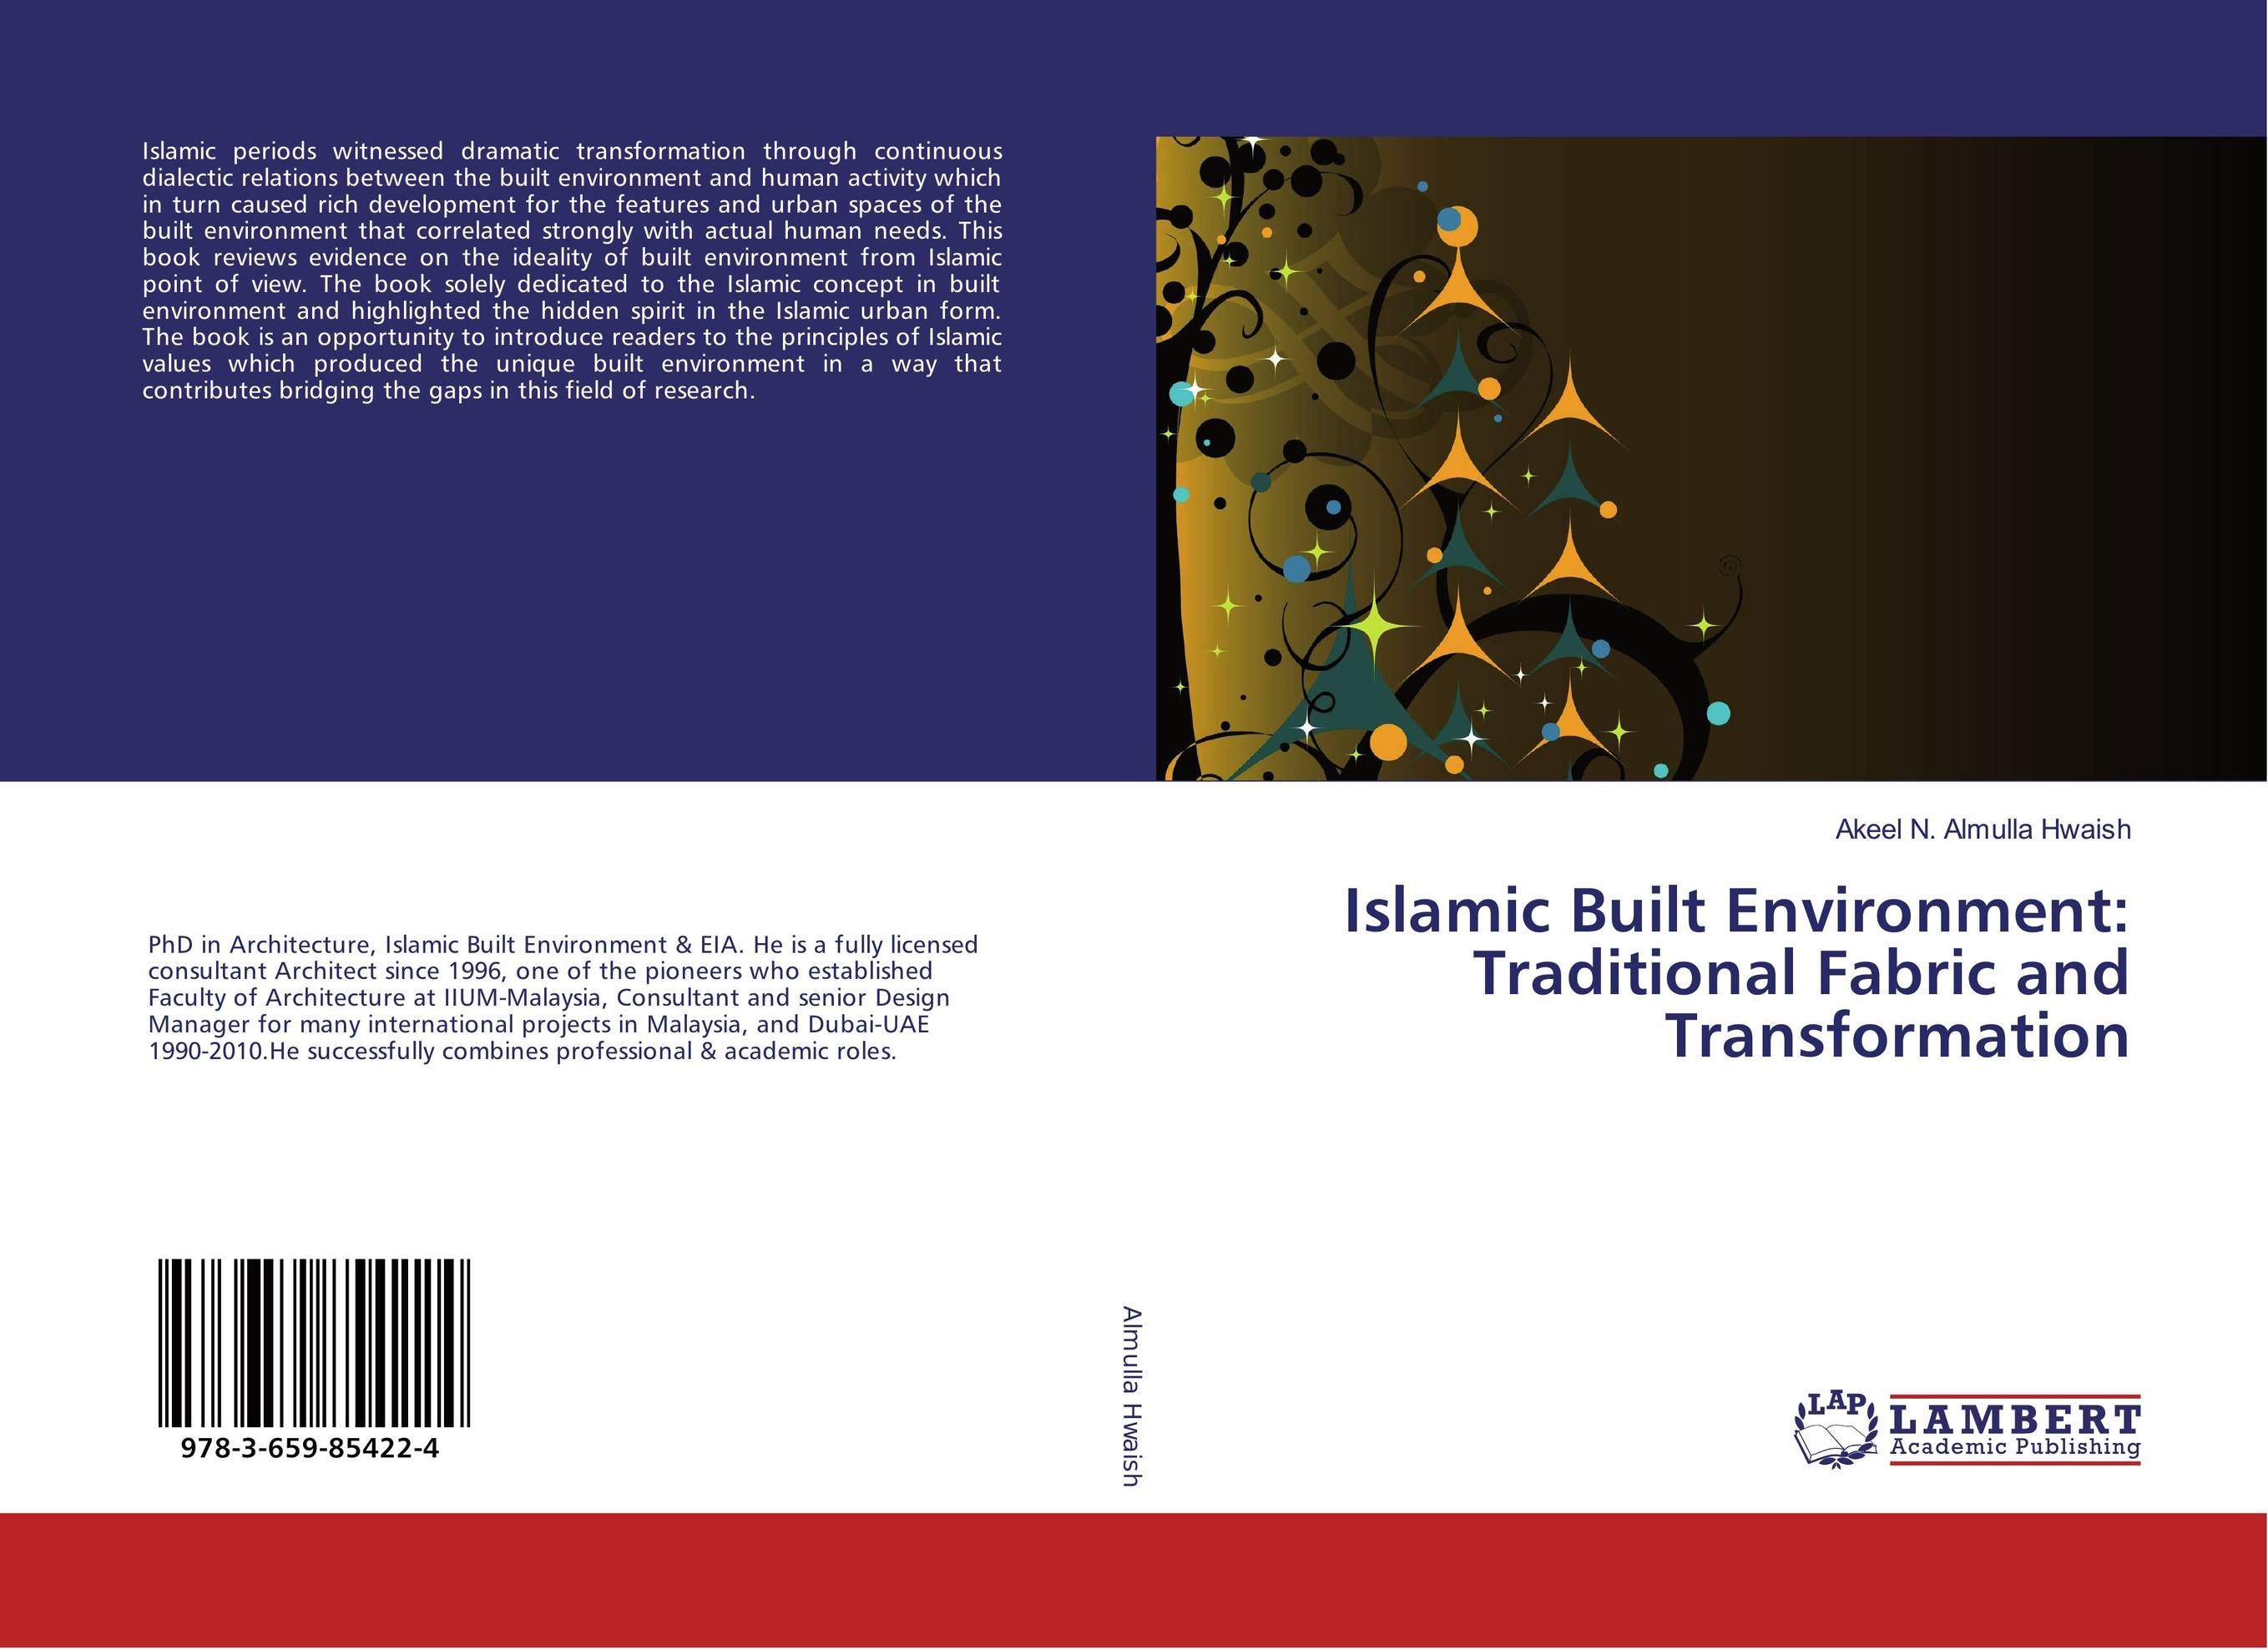 Islamic Built Environment: Traditional Fabric and Transformation